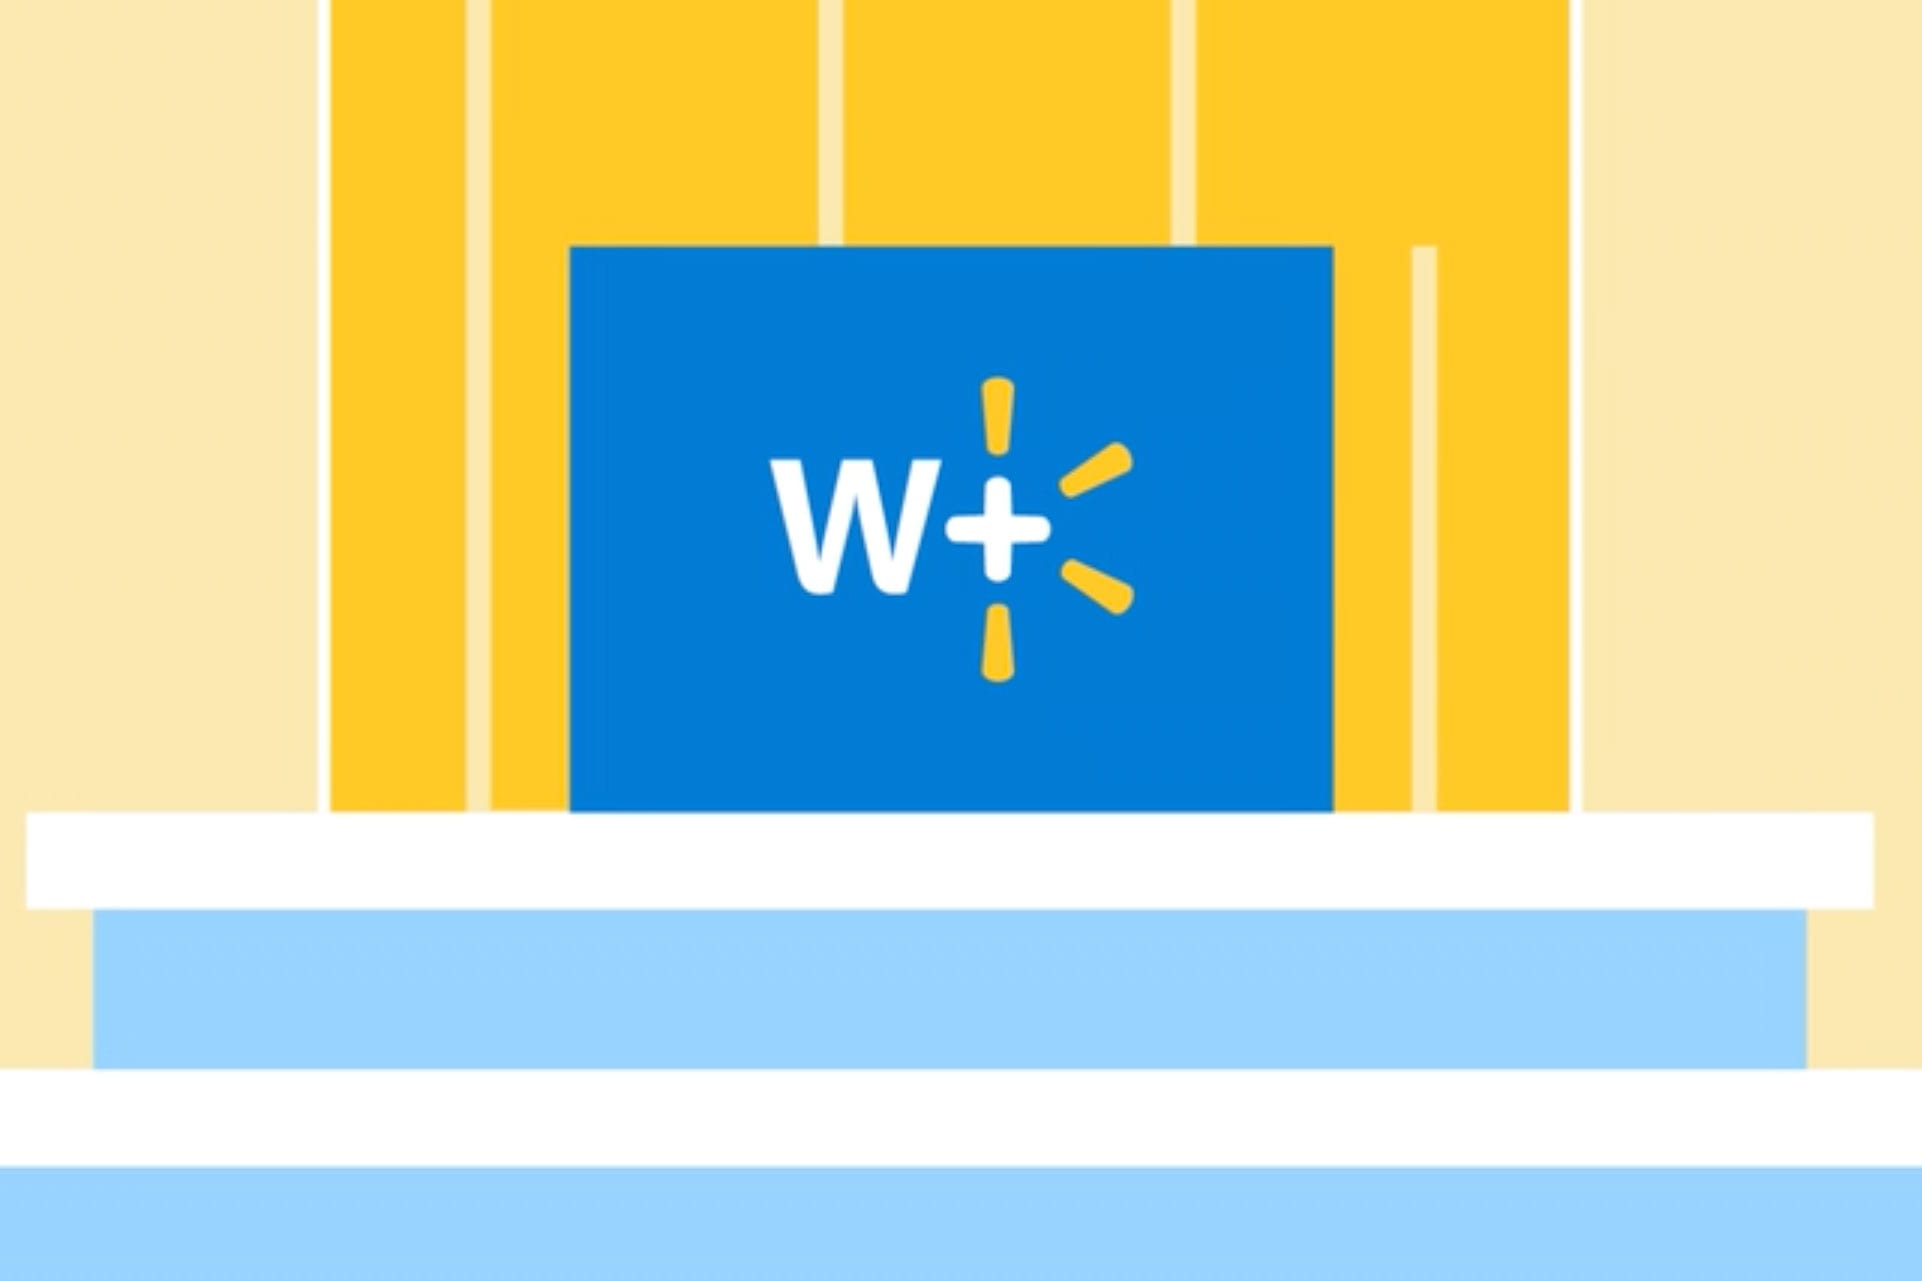 All eyes on Walmart+: Investors want to know if service is creating more loyal customers